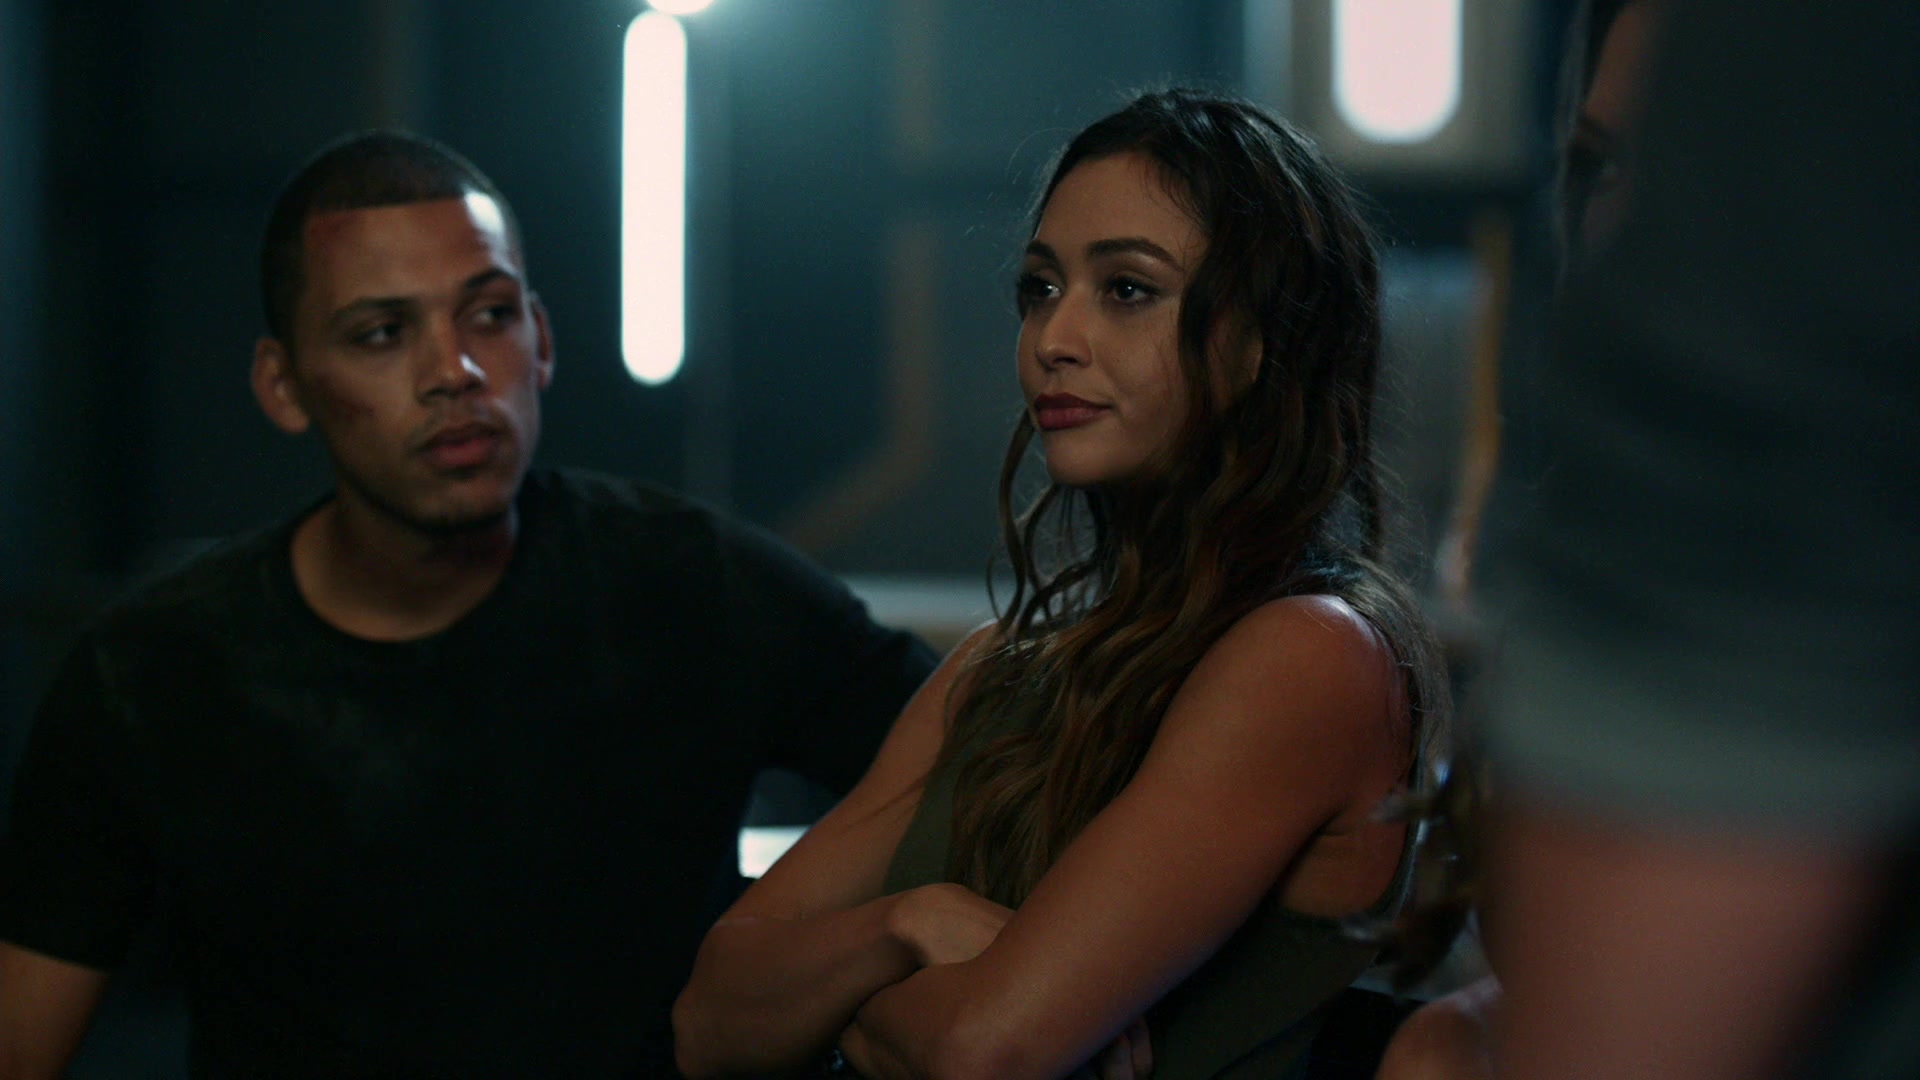 https://www.lindseymorgan.net/gallery/albums/Television/The100/Season6/Screencaps/6x01/the100_6x01_0115.jpg